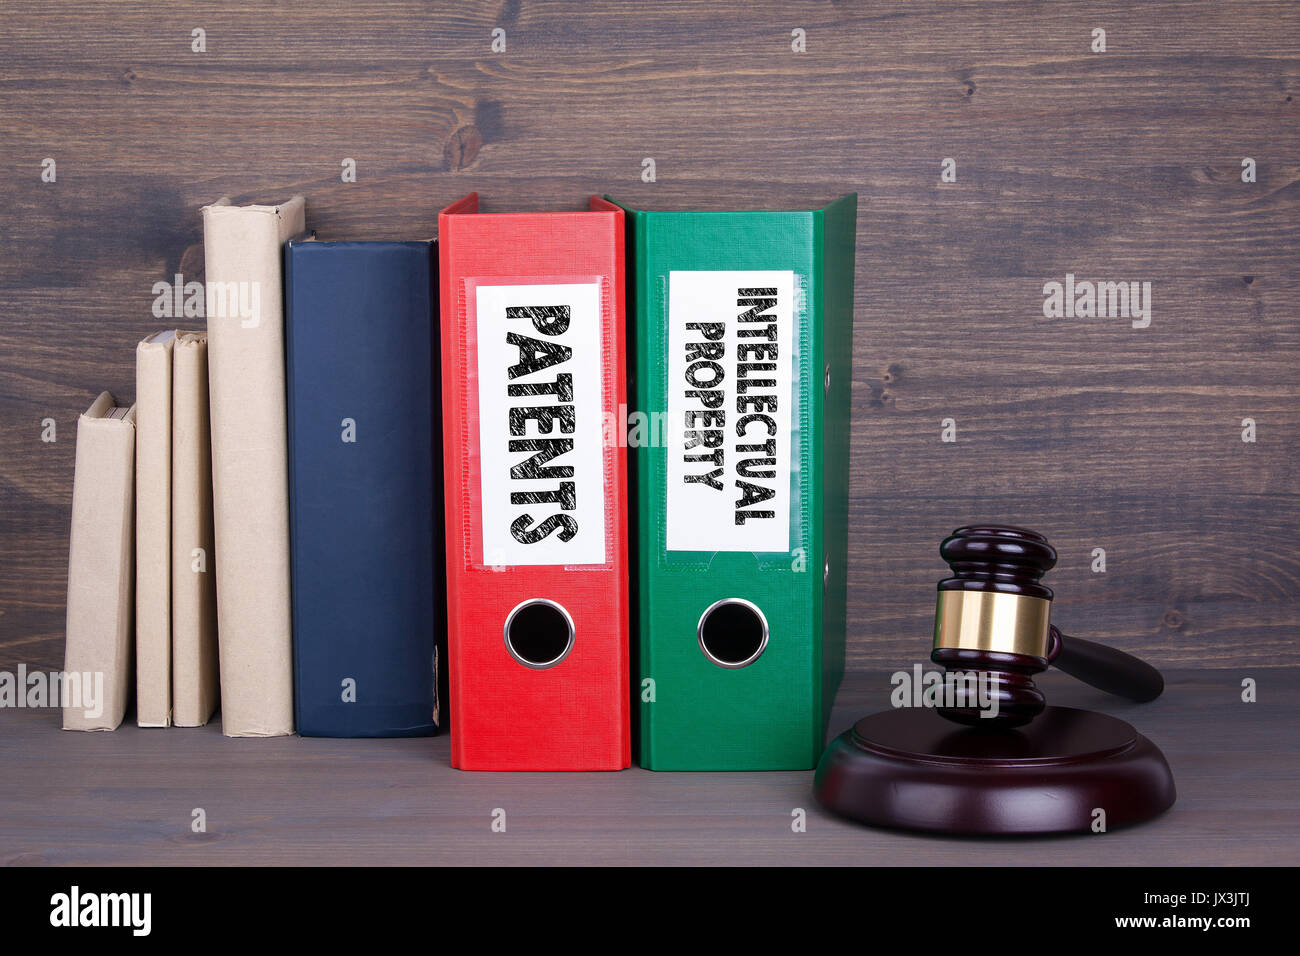 Patents and Intellectual Property. Wooden gavel and books in background. Law and justice concept. - Stock Image